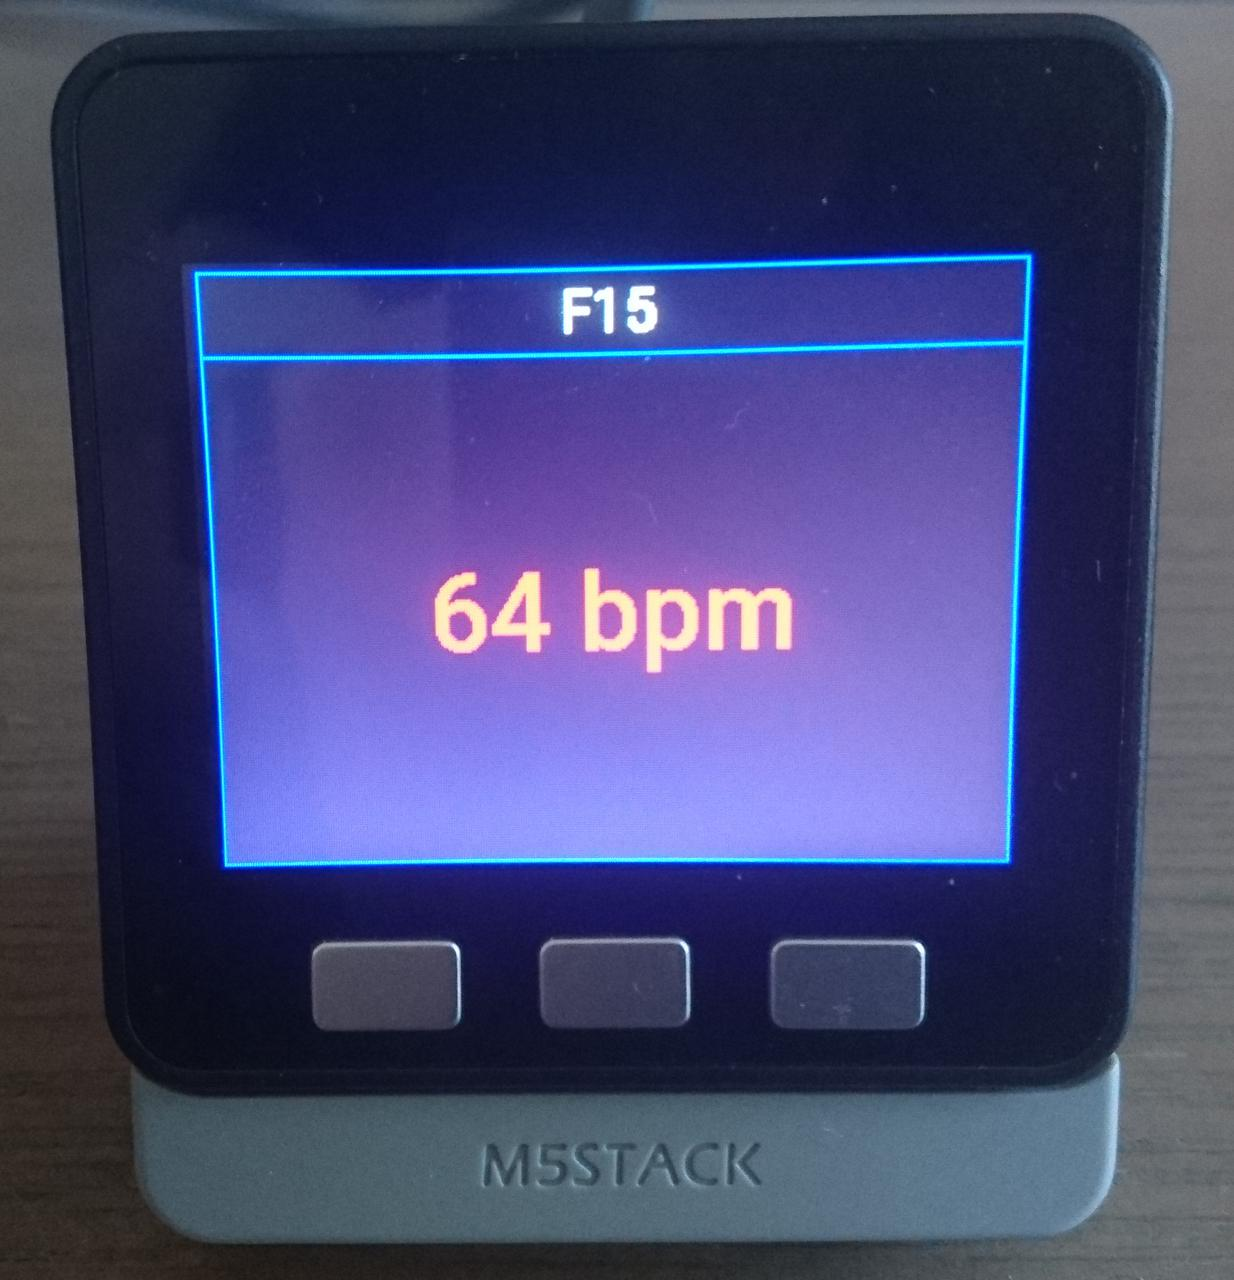 /images/esphome-heart-rate-display-m5stack-core.jpg